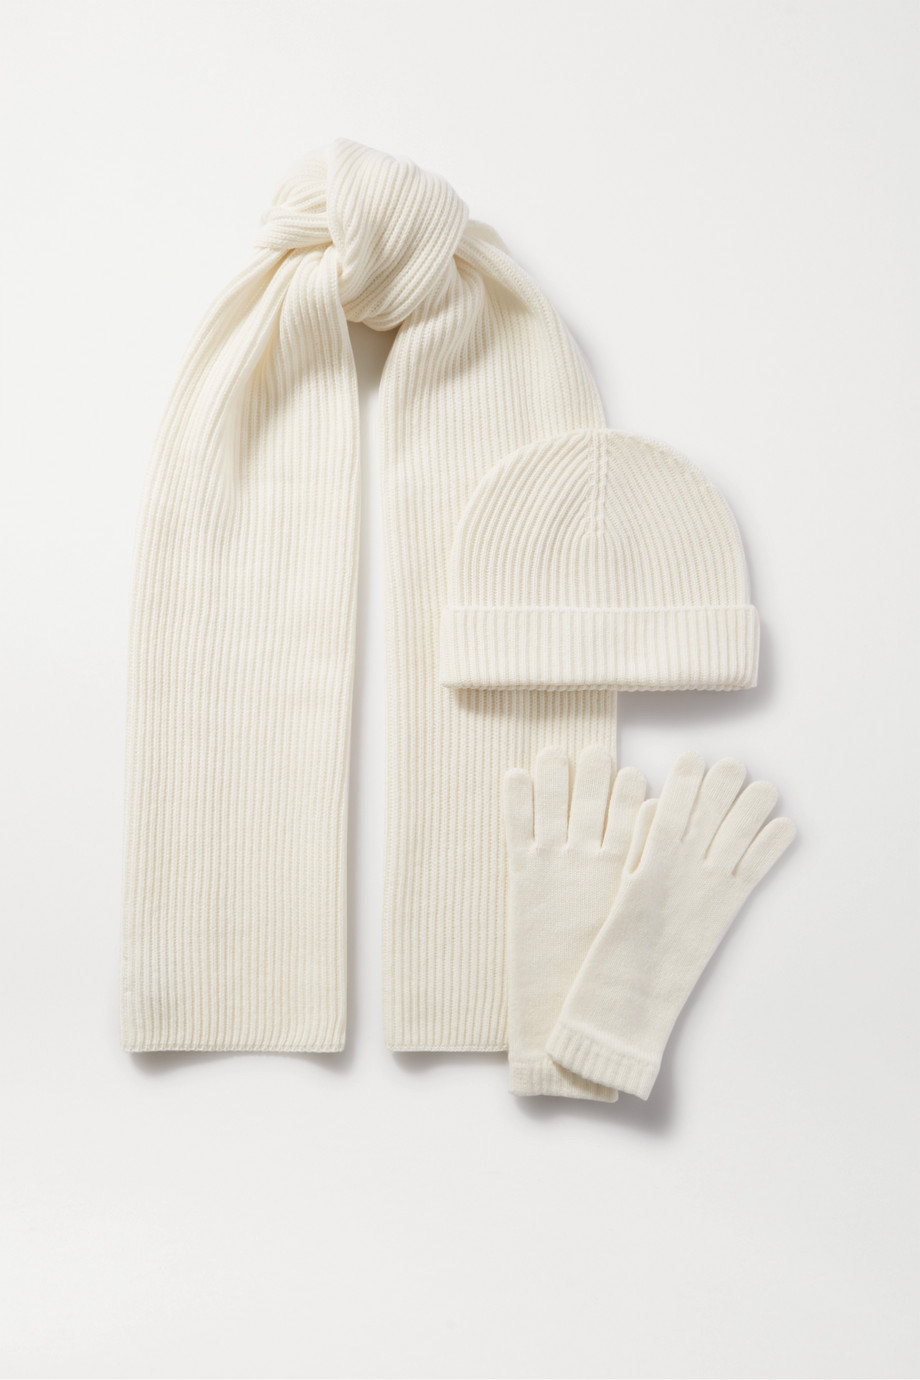 Johnstons of Elgin Cashmere hat, scarf and gloves set